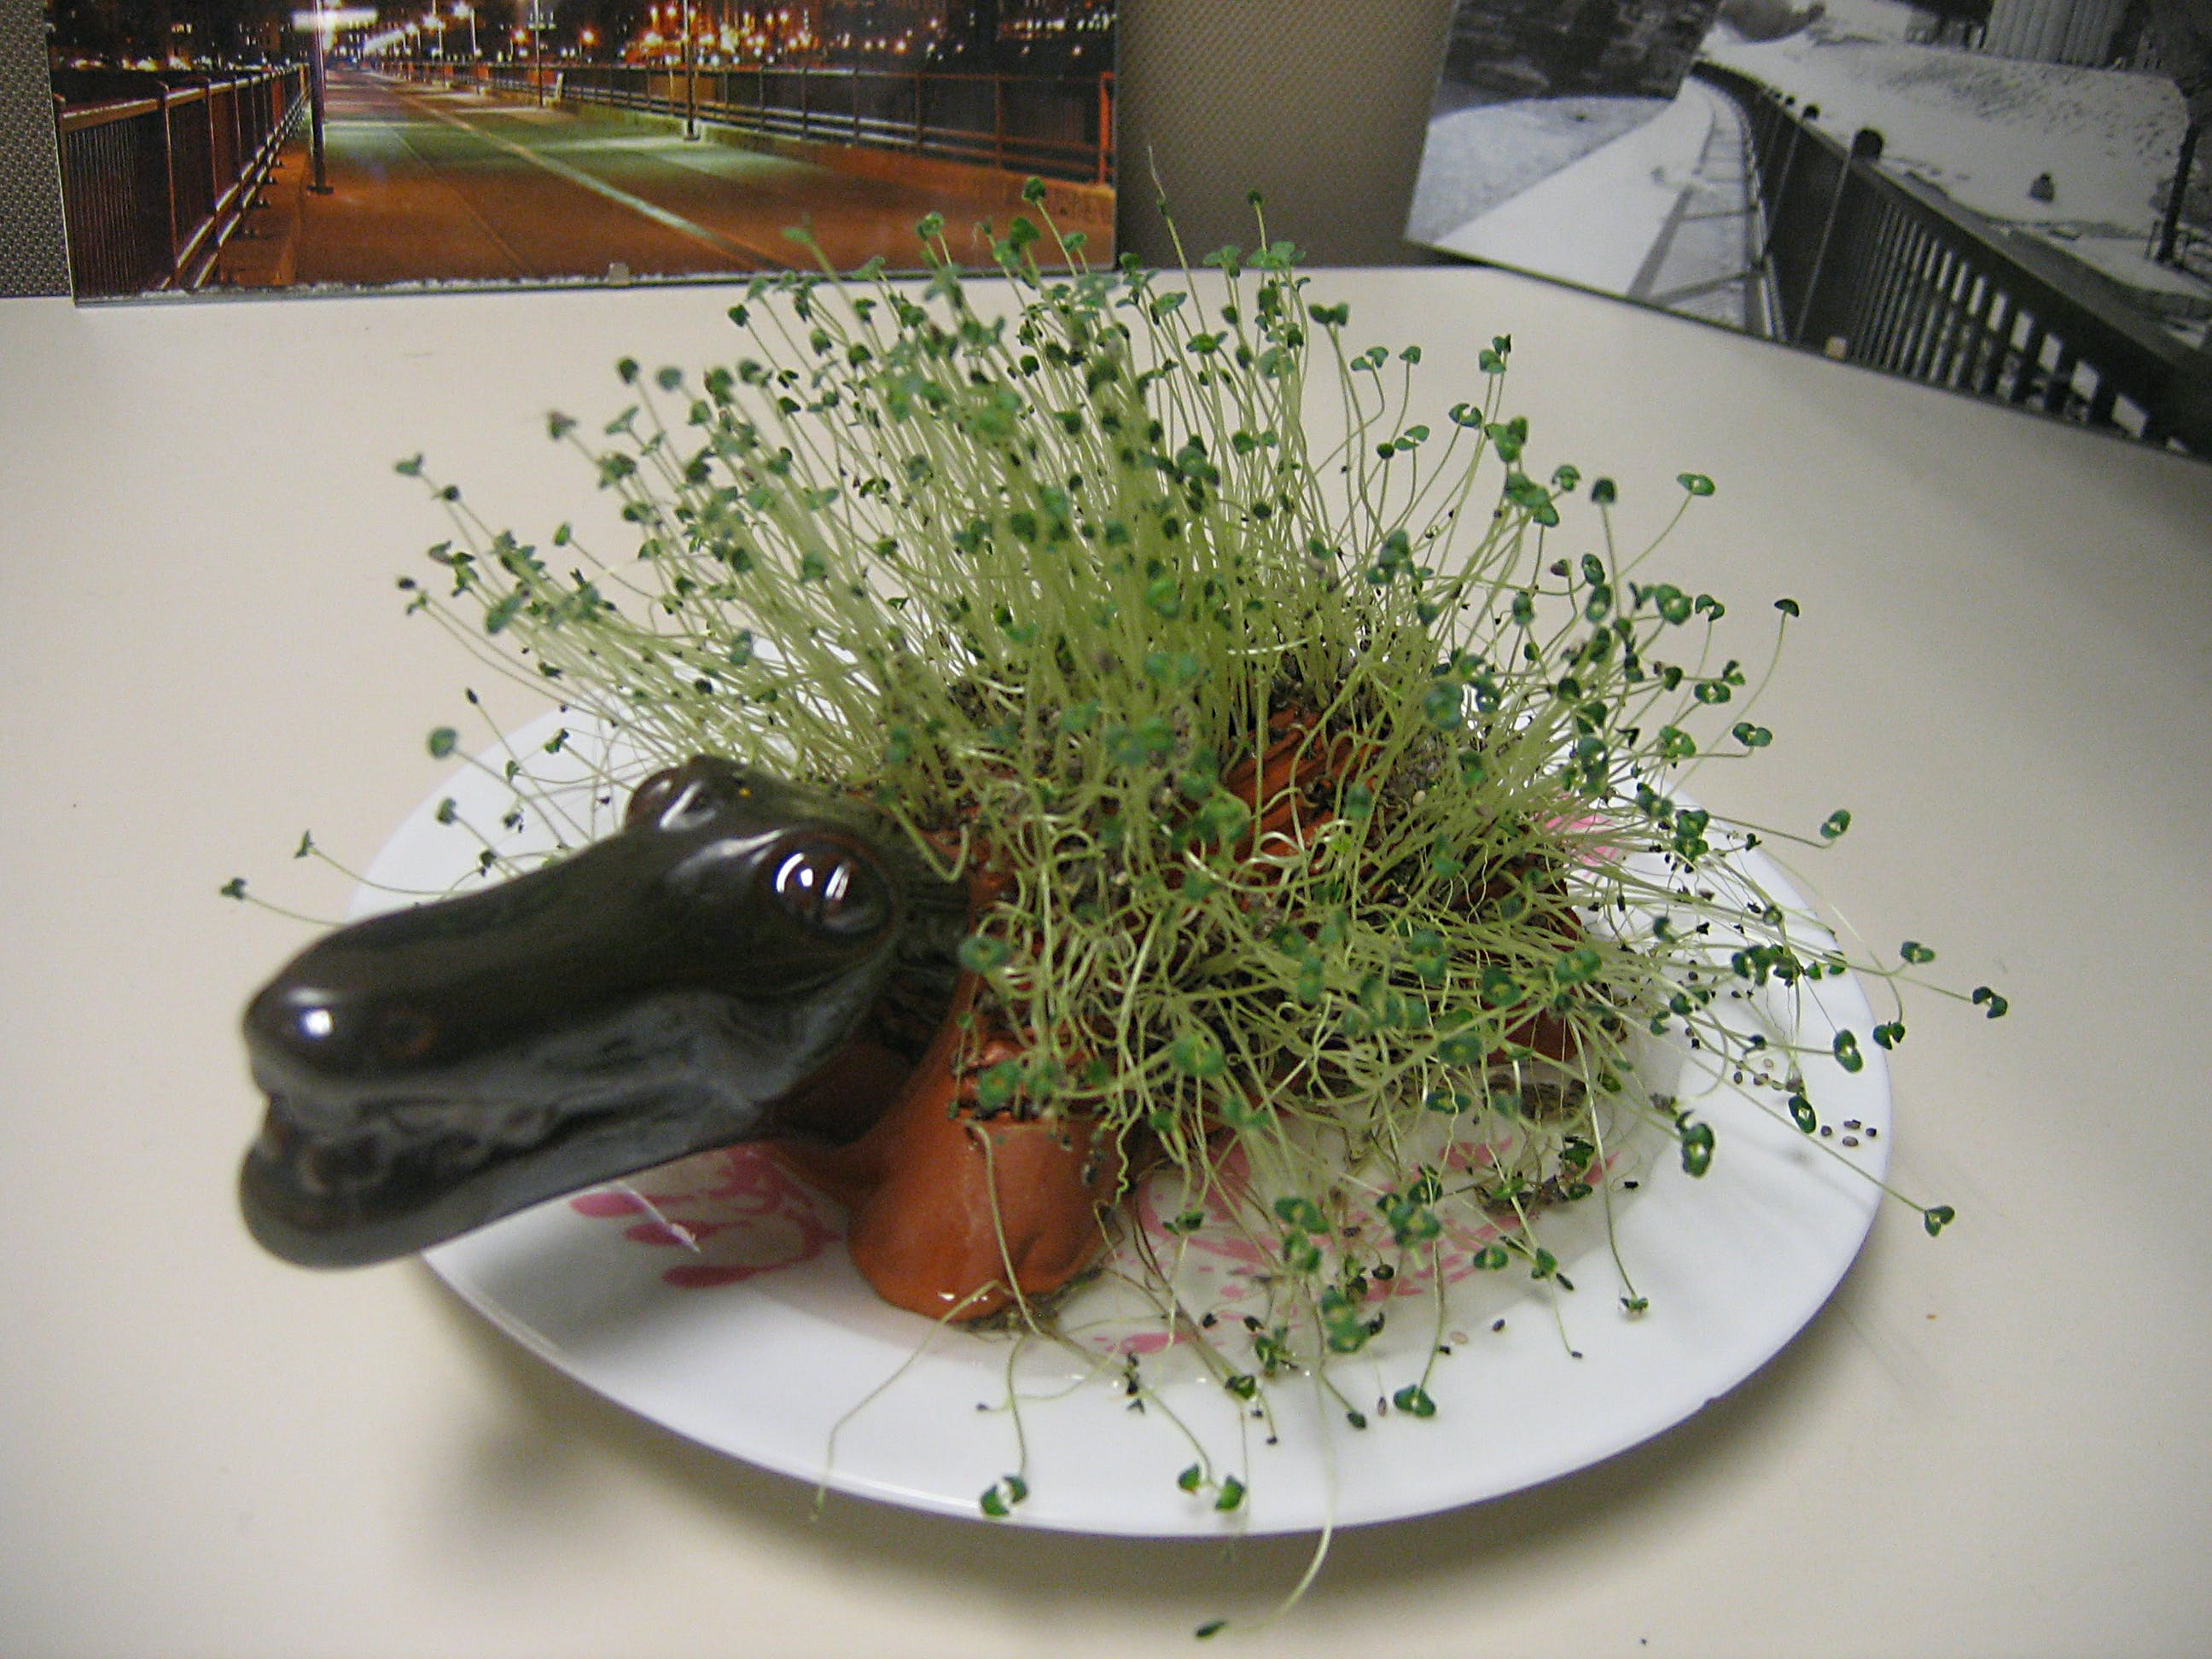 A chia pet shaped like an alligator, with sprouts growing all over.